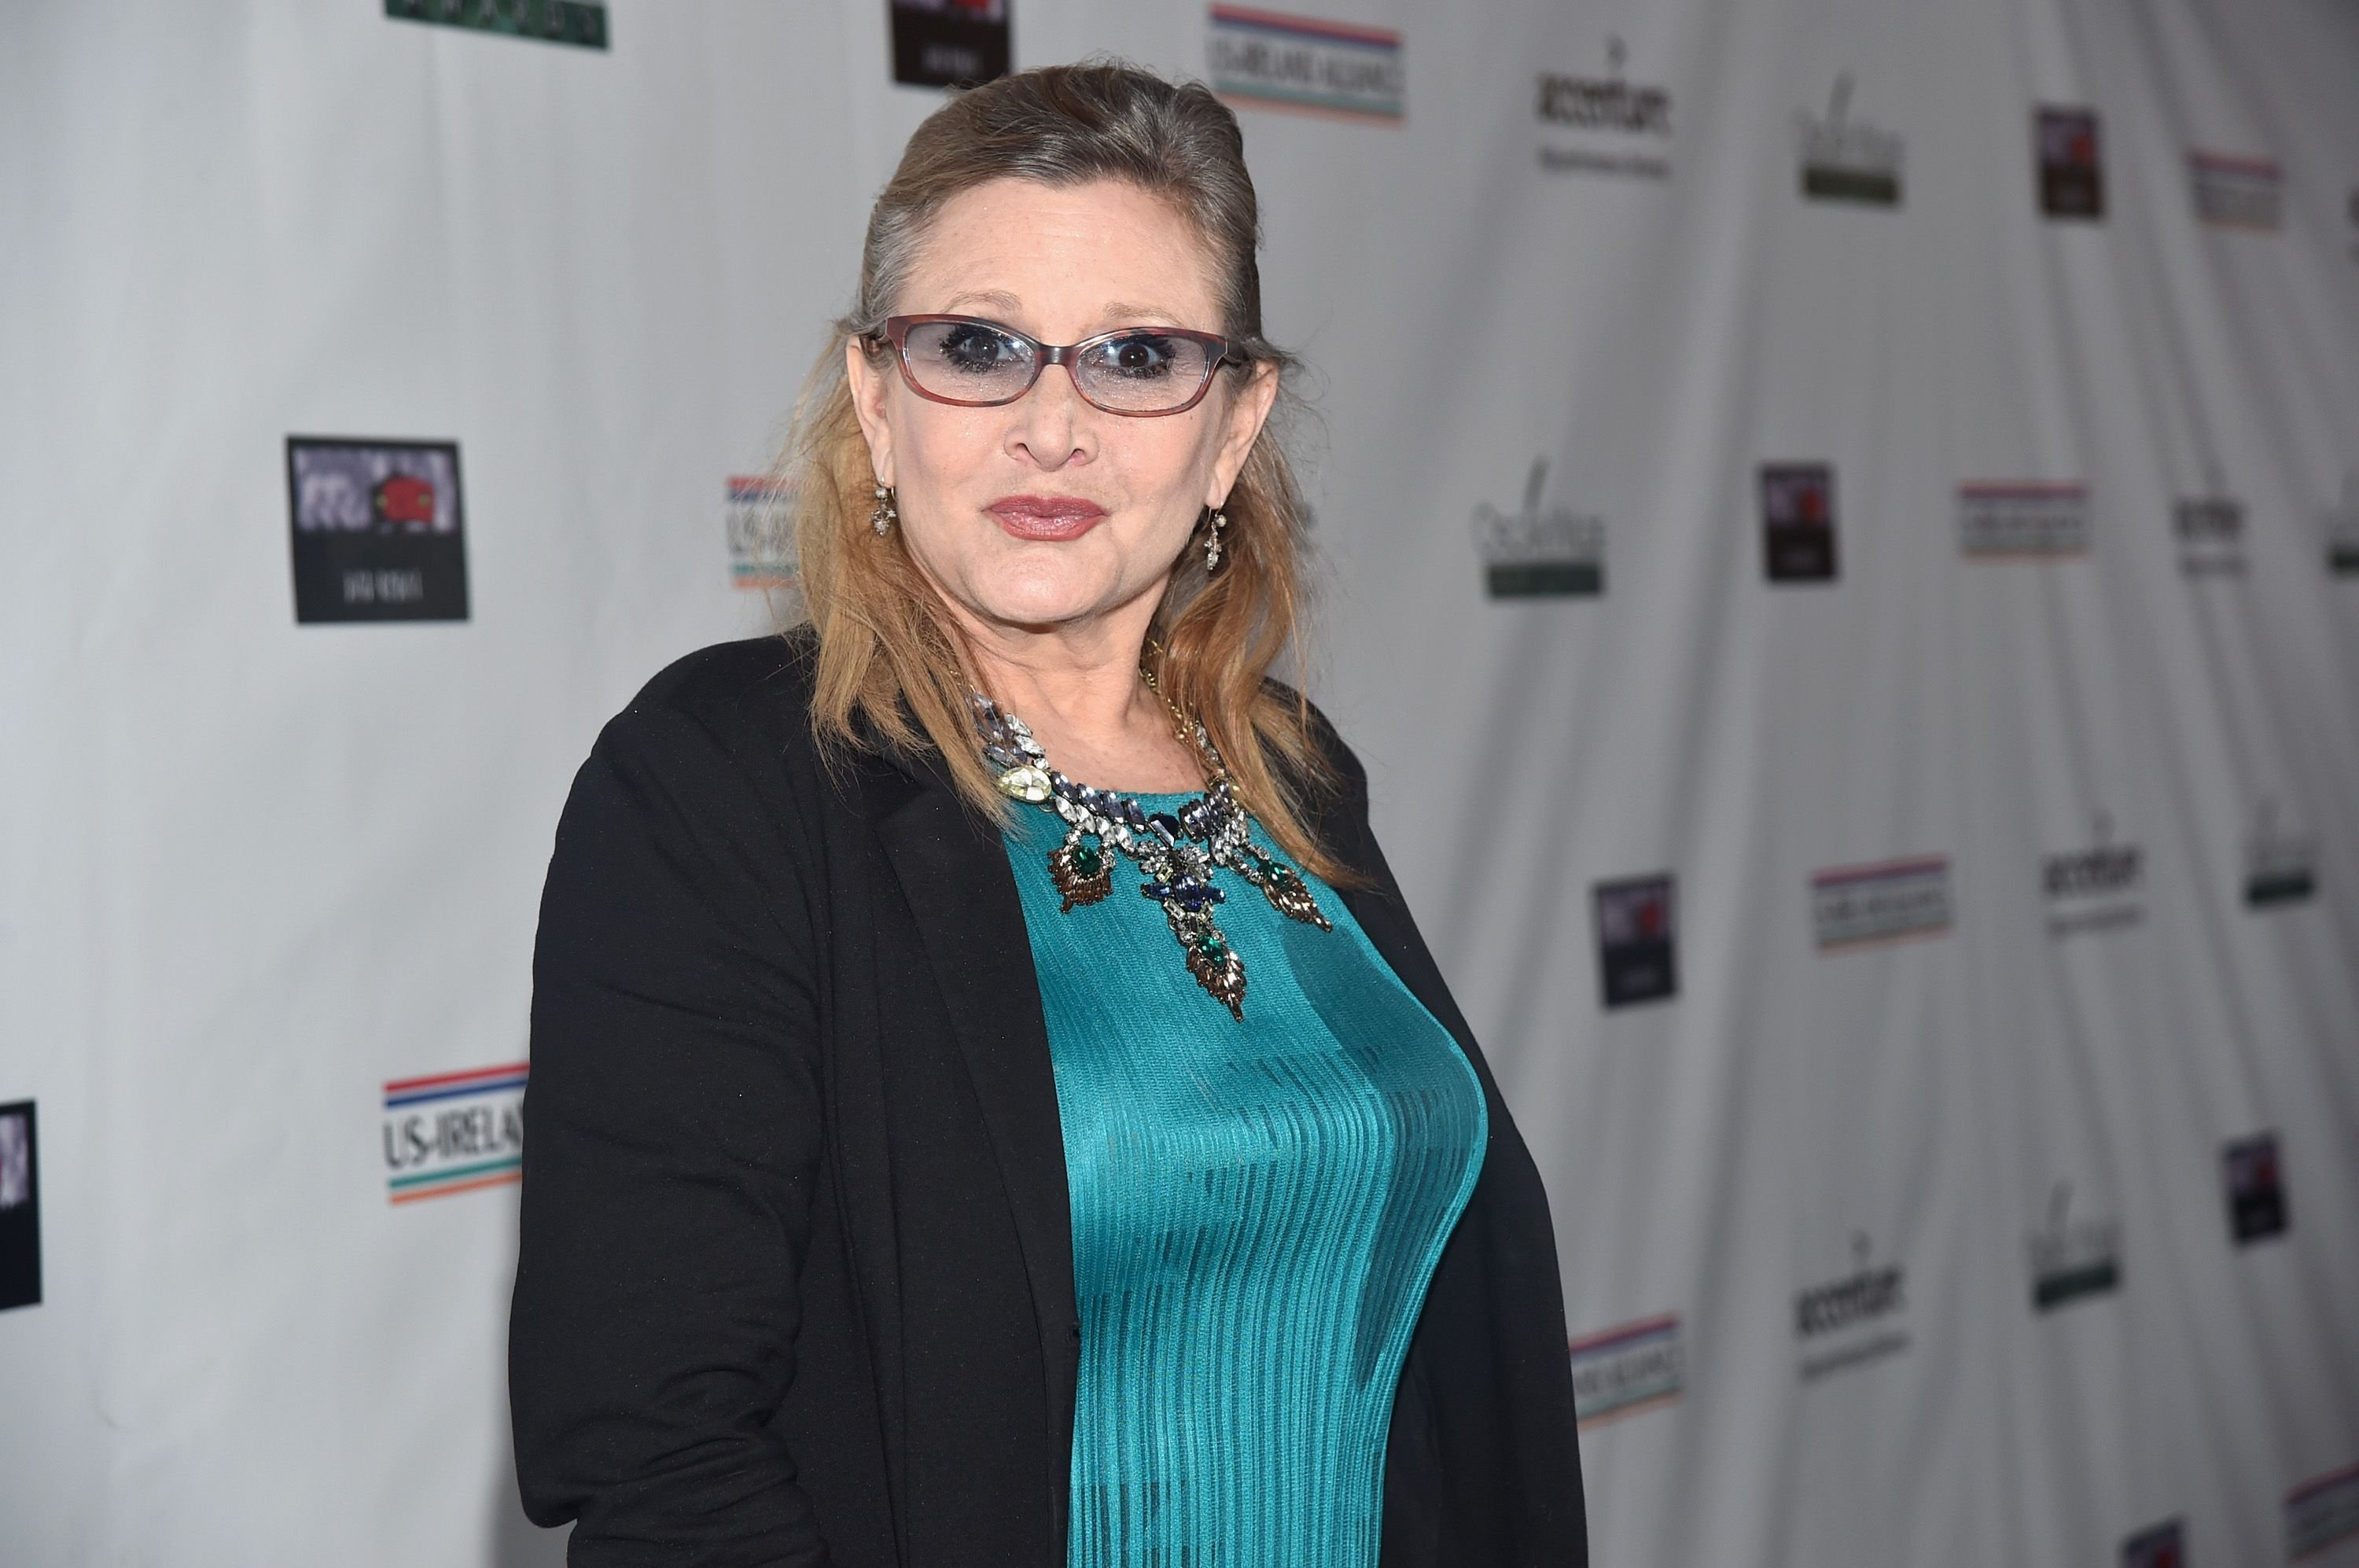 Carrie Fisher at the US-Ireland Aliiance's Oscar Wilde Awards event at J.J. Abrams' Bad Robot on February 19, 2015 | Photo: Getty Images